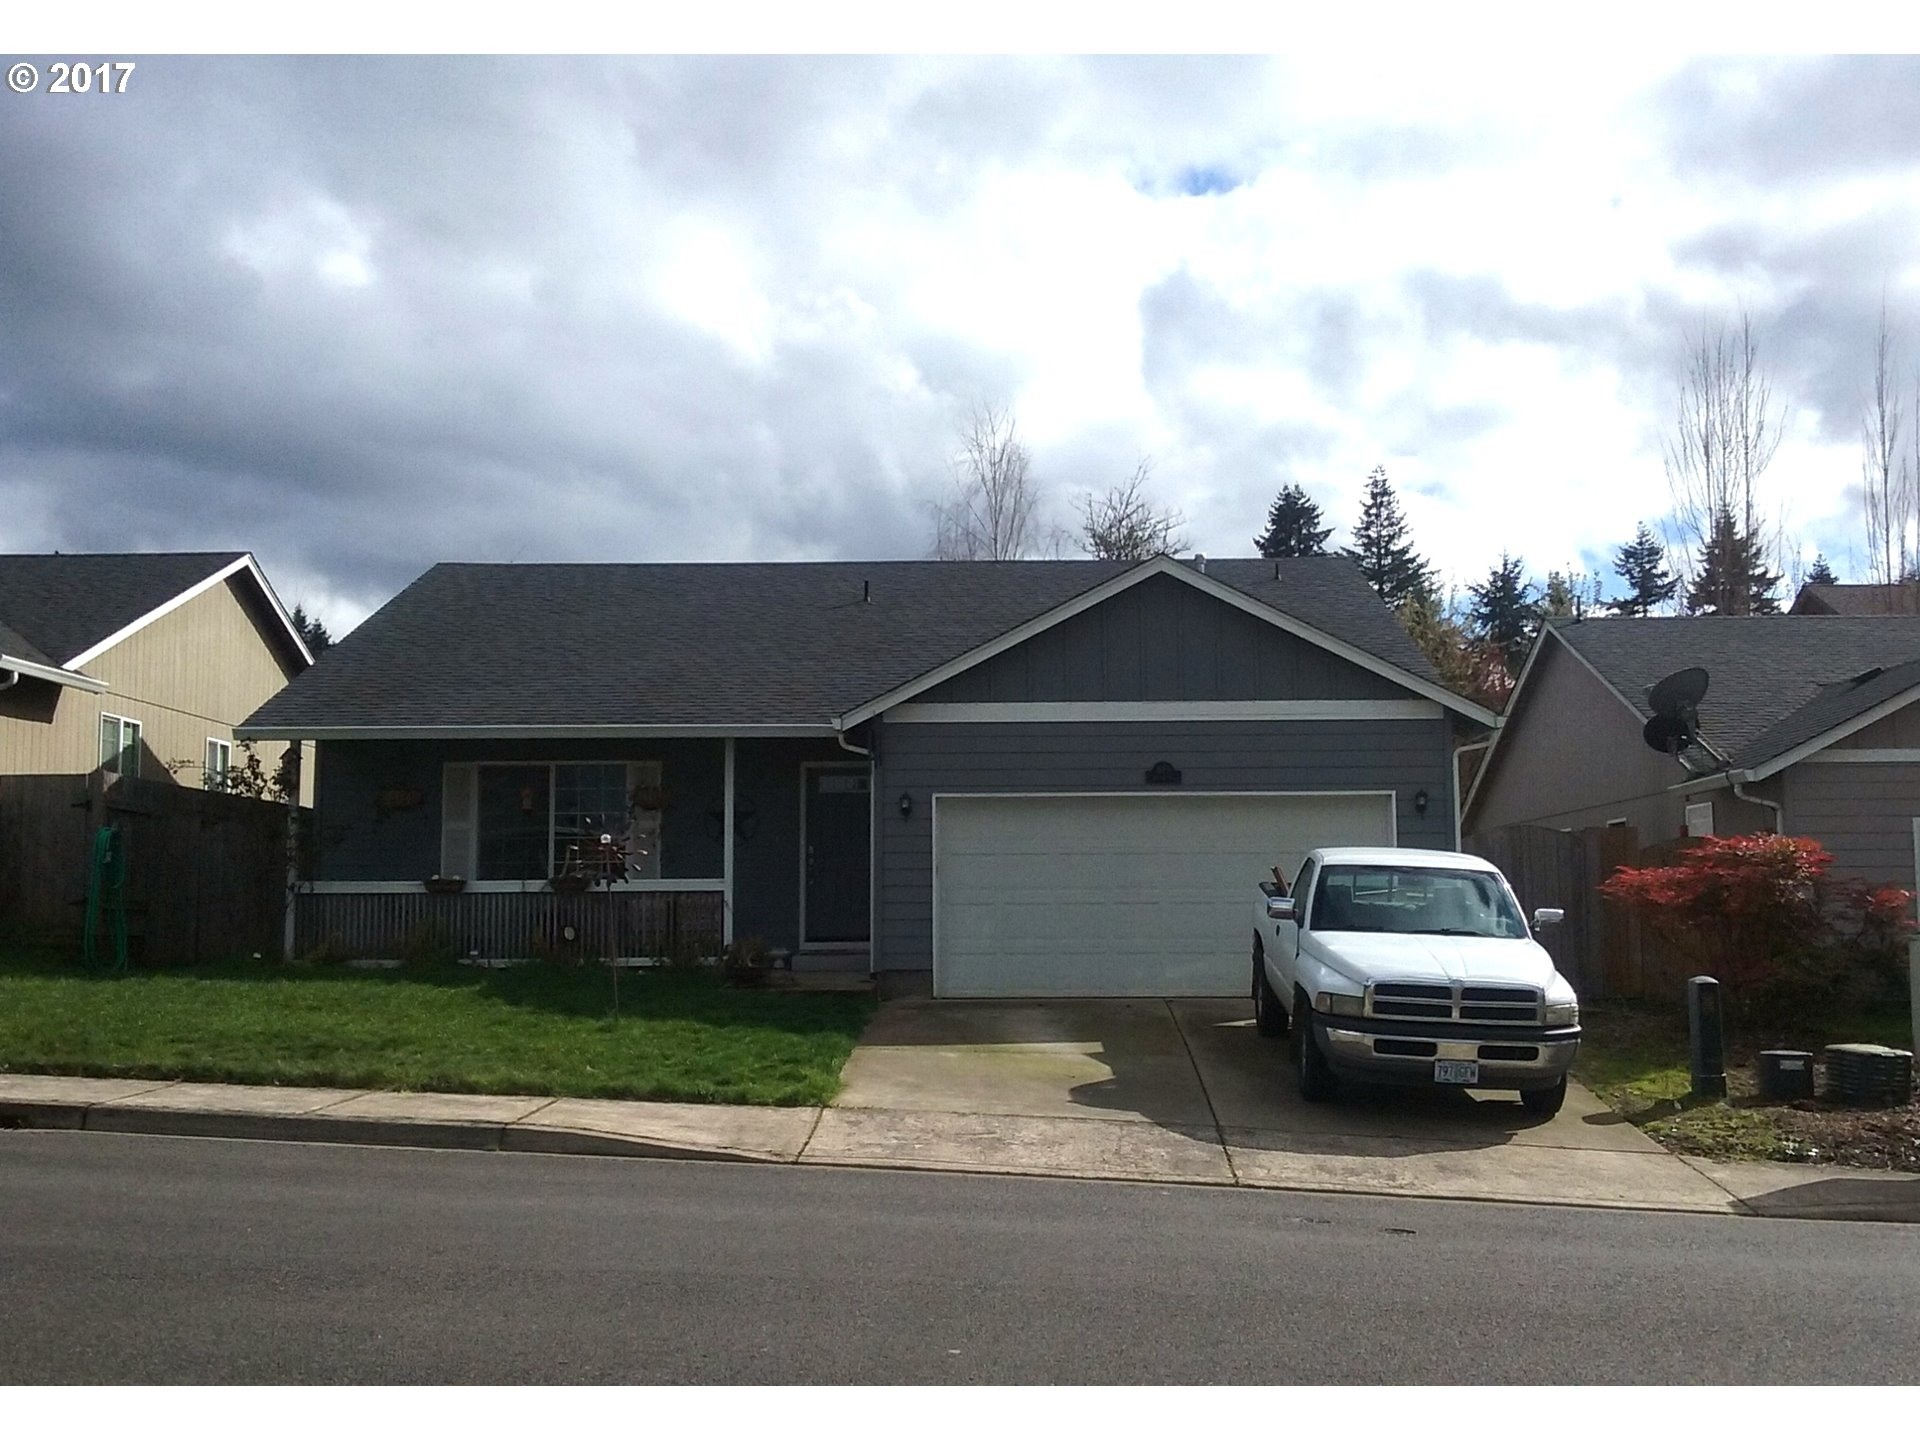 895 ARTHUR AVE, Cottage Grove, OR 97424